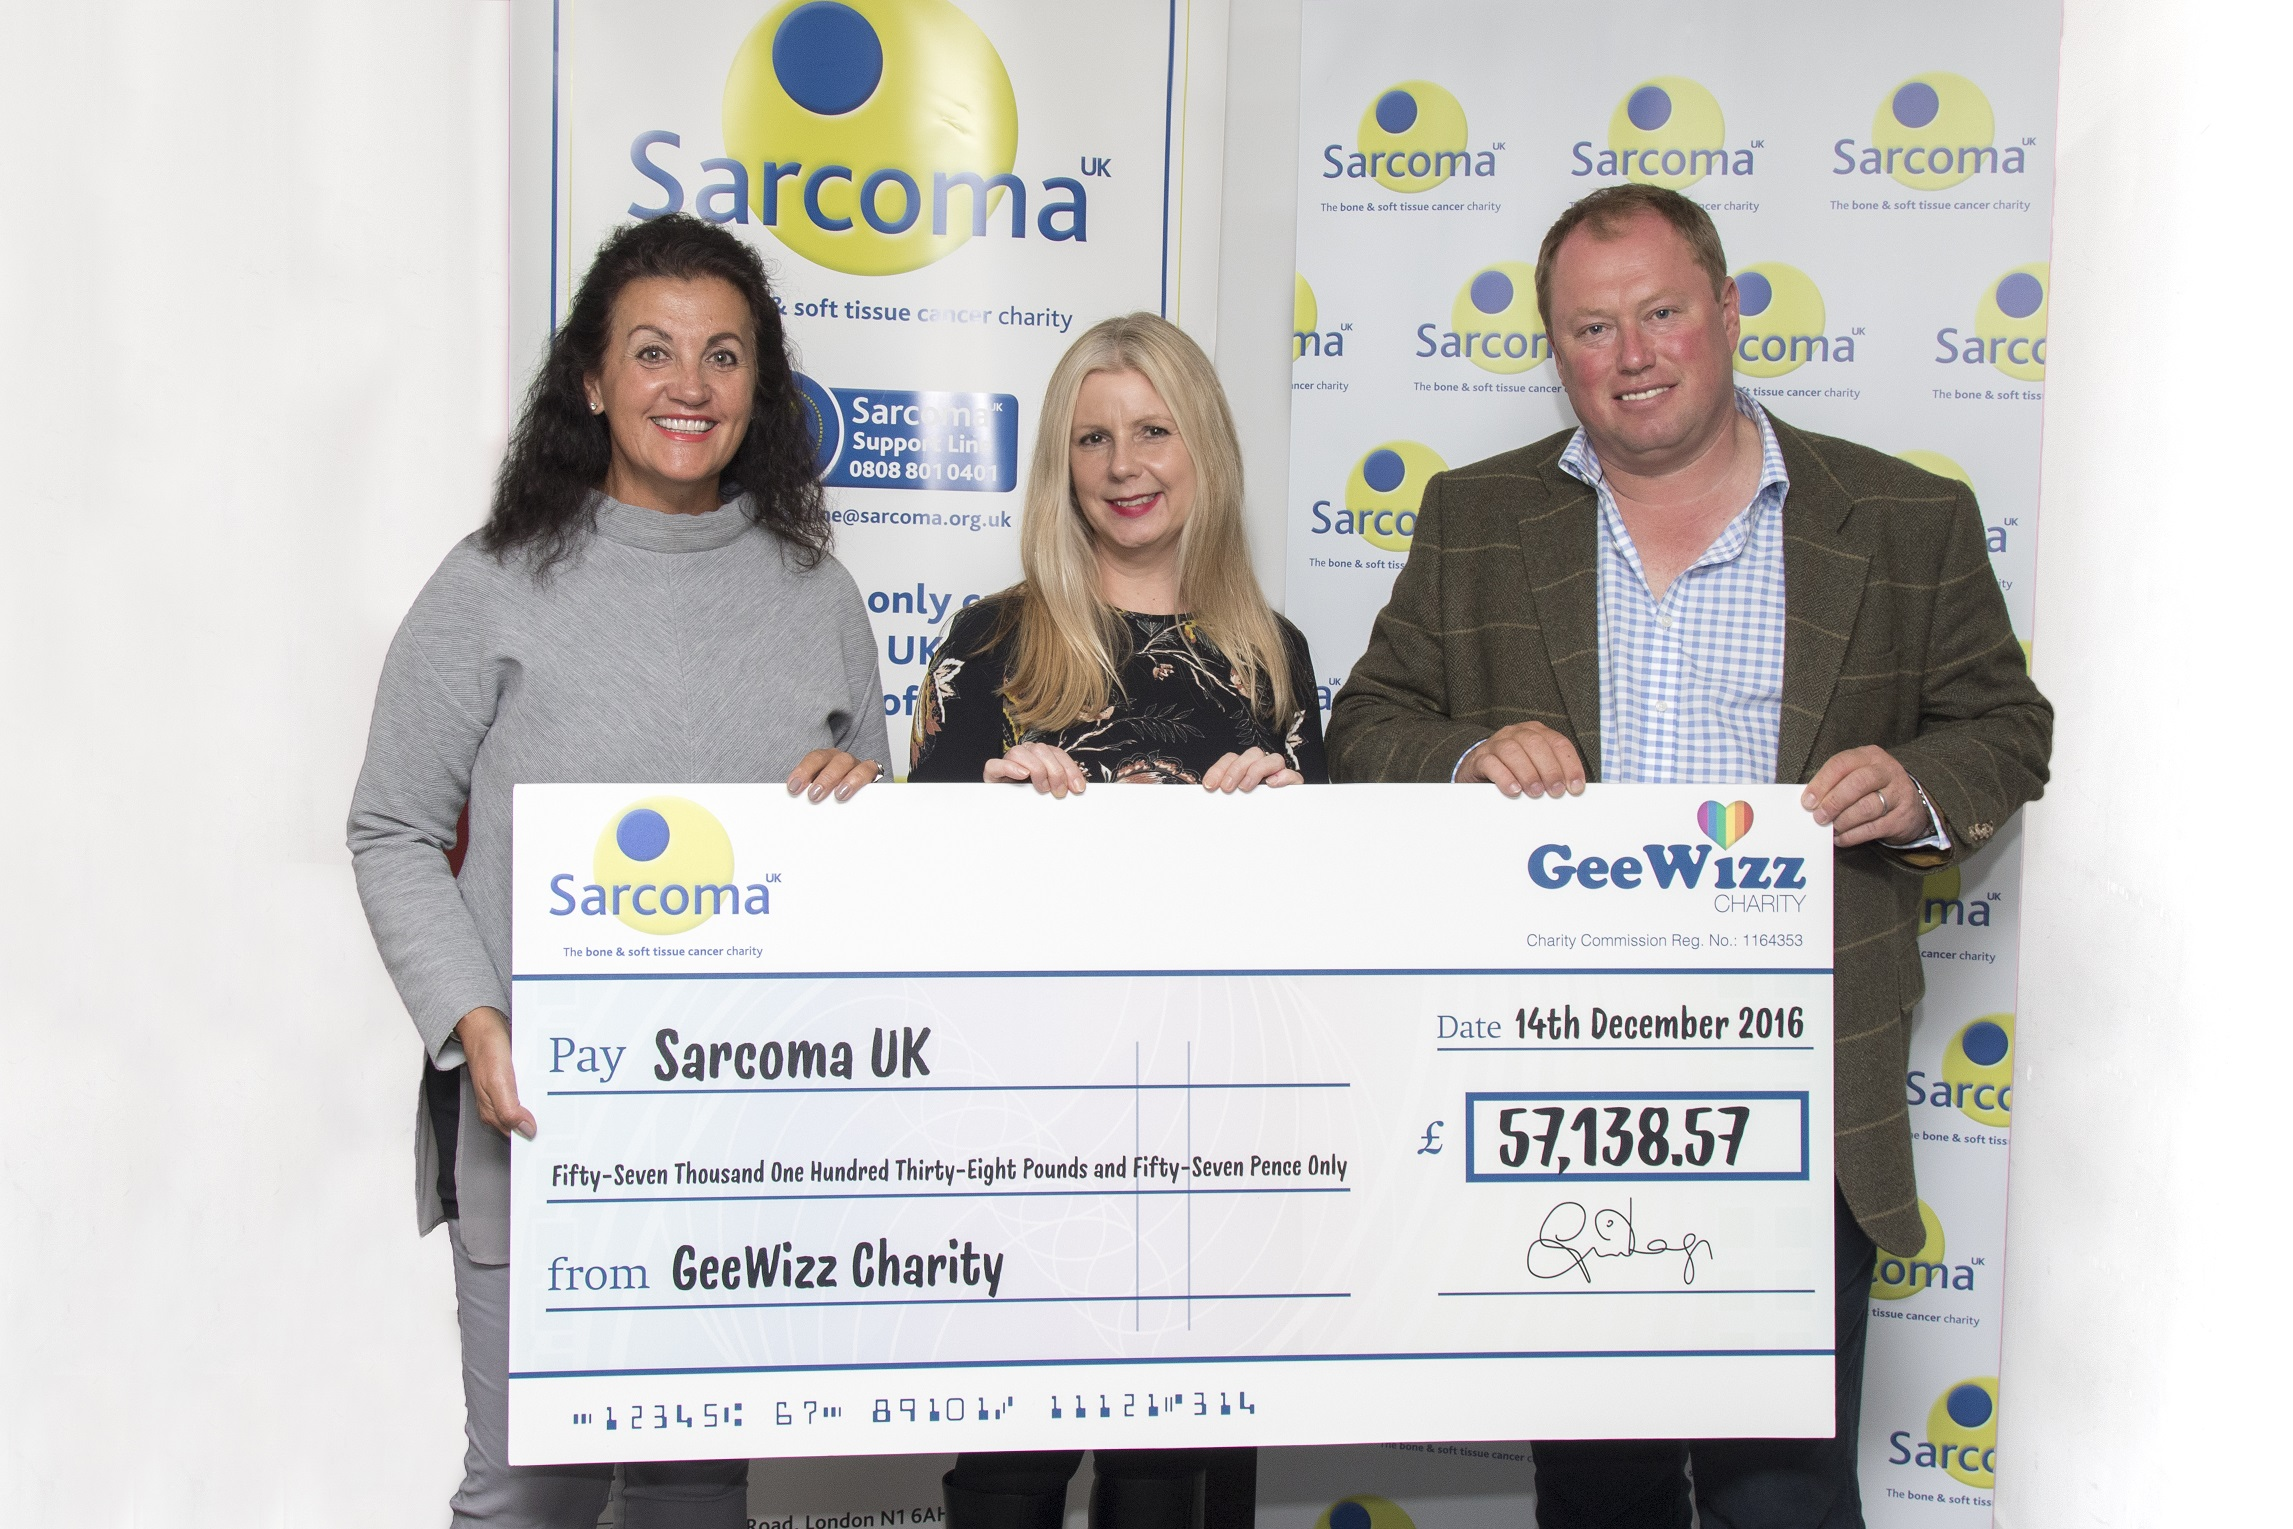 GeeWizz charity presents Sarcoma UK with cheque for more than £57,000